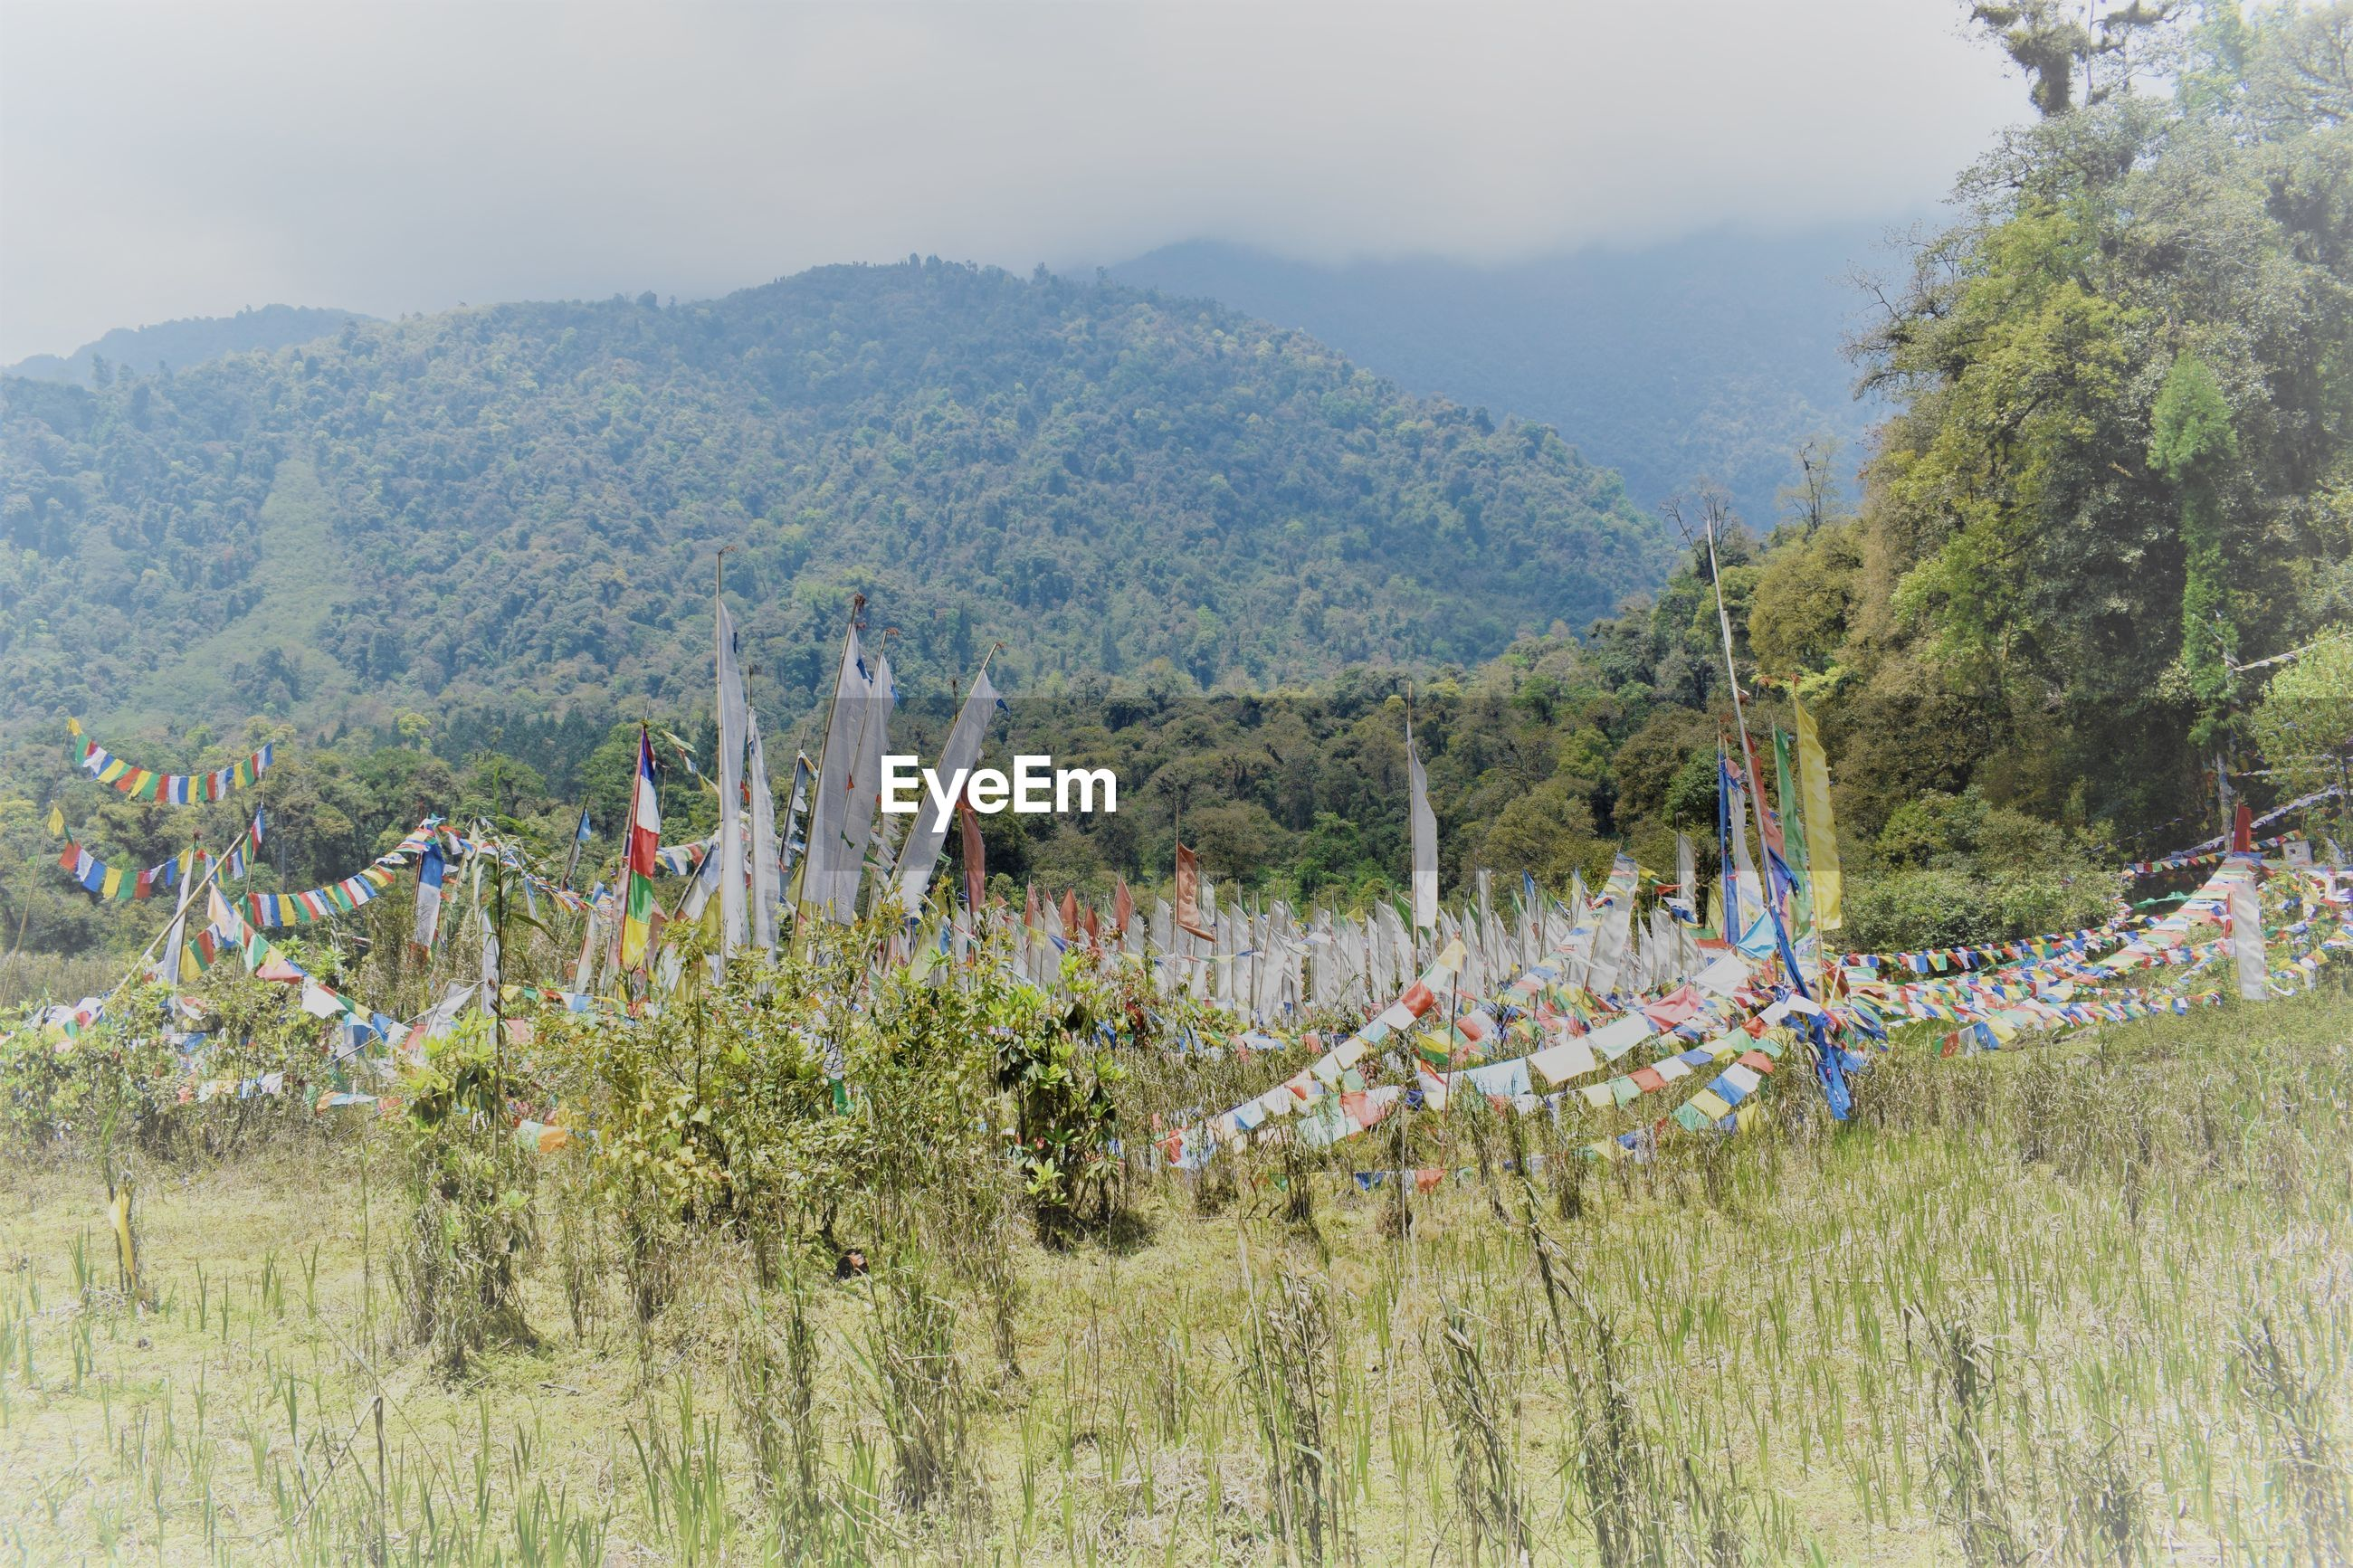 Plants growing on field against mountains